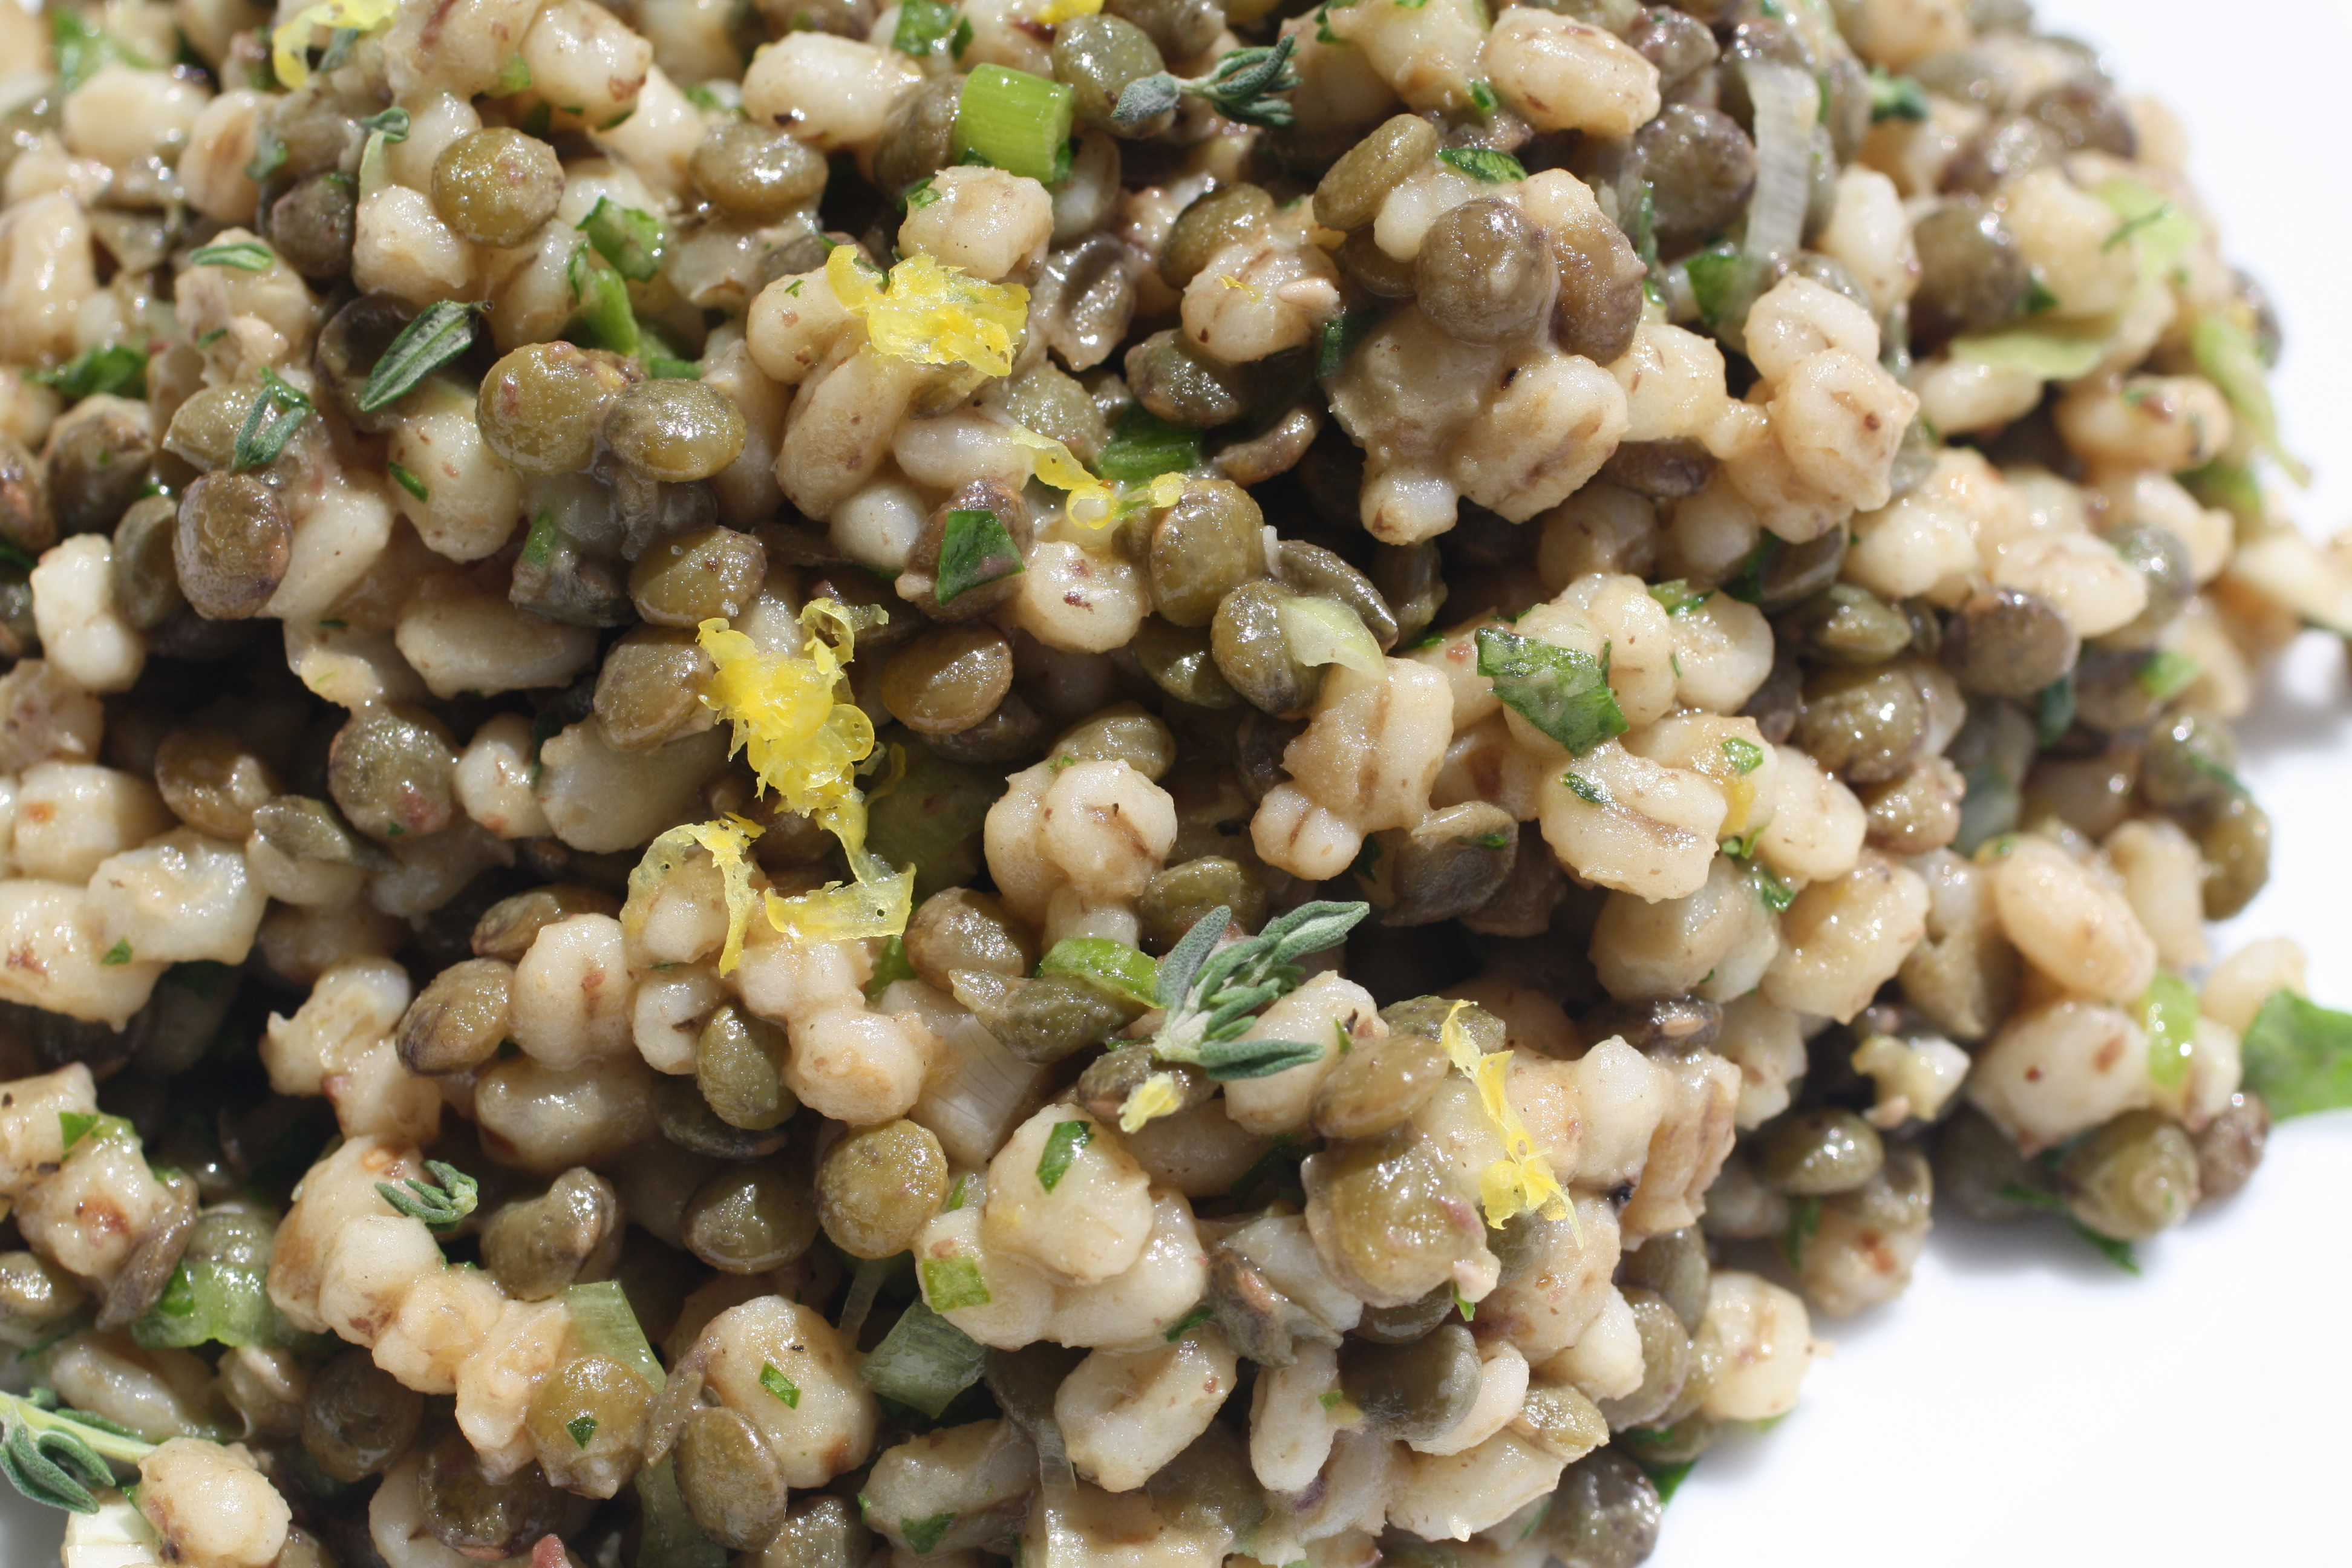 Lentil and Barley Salad